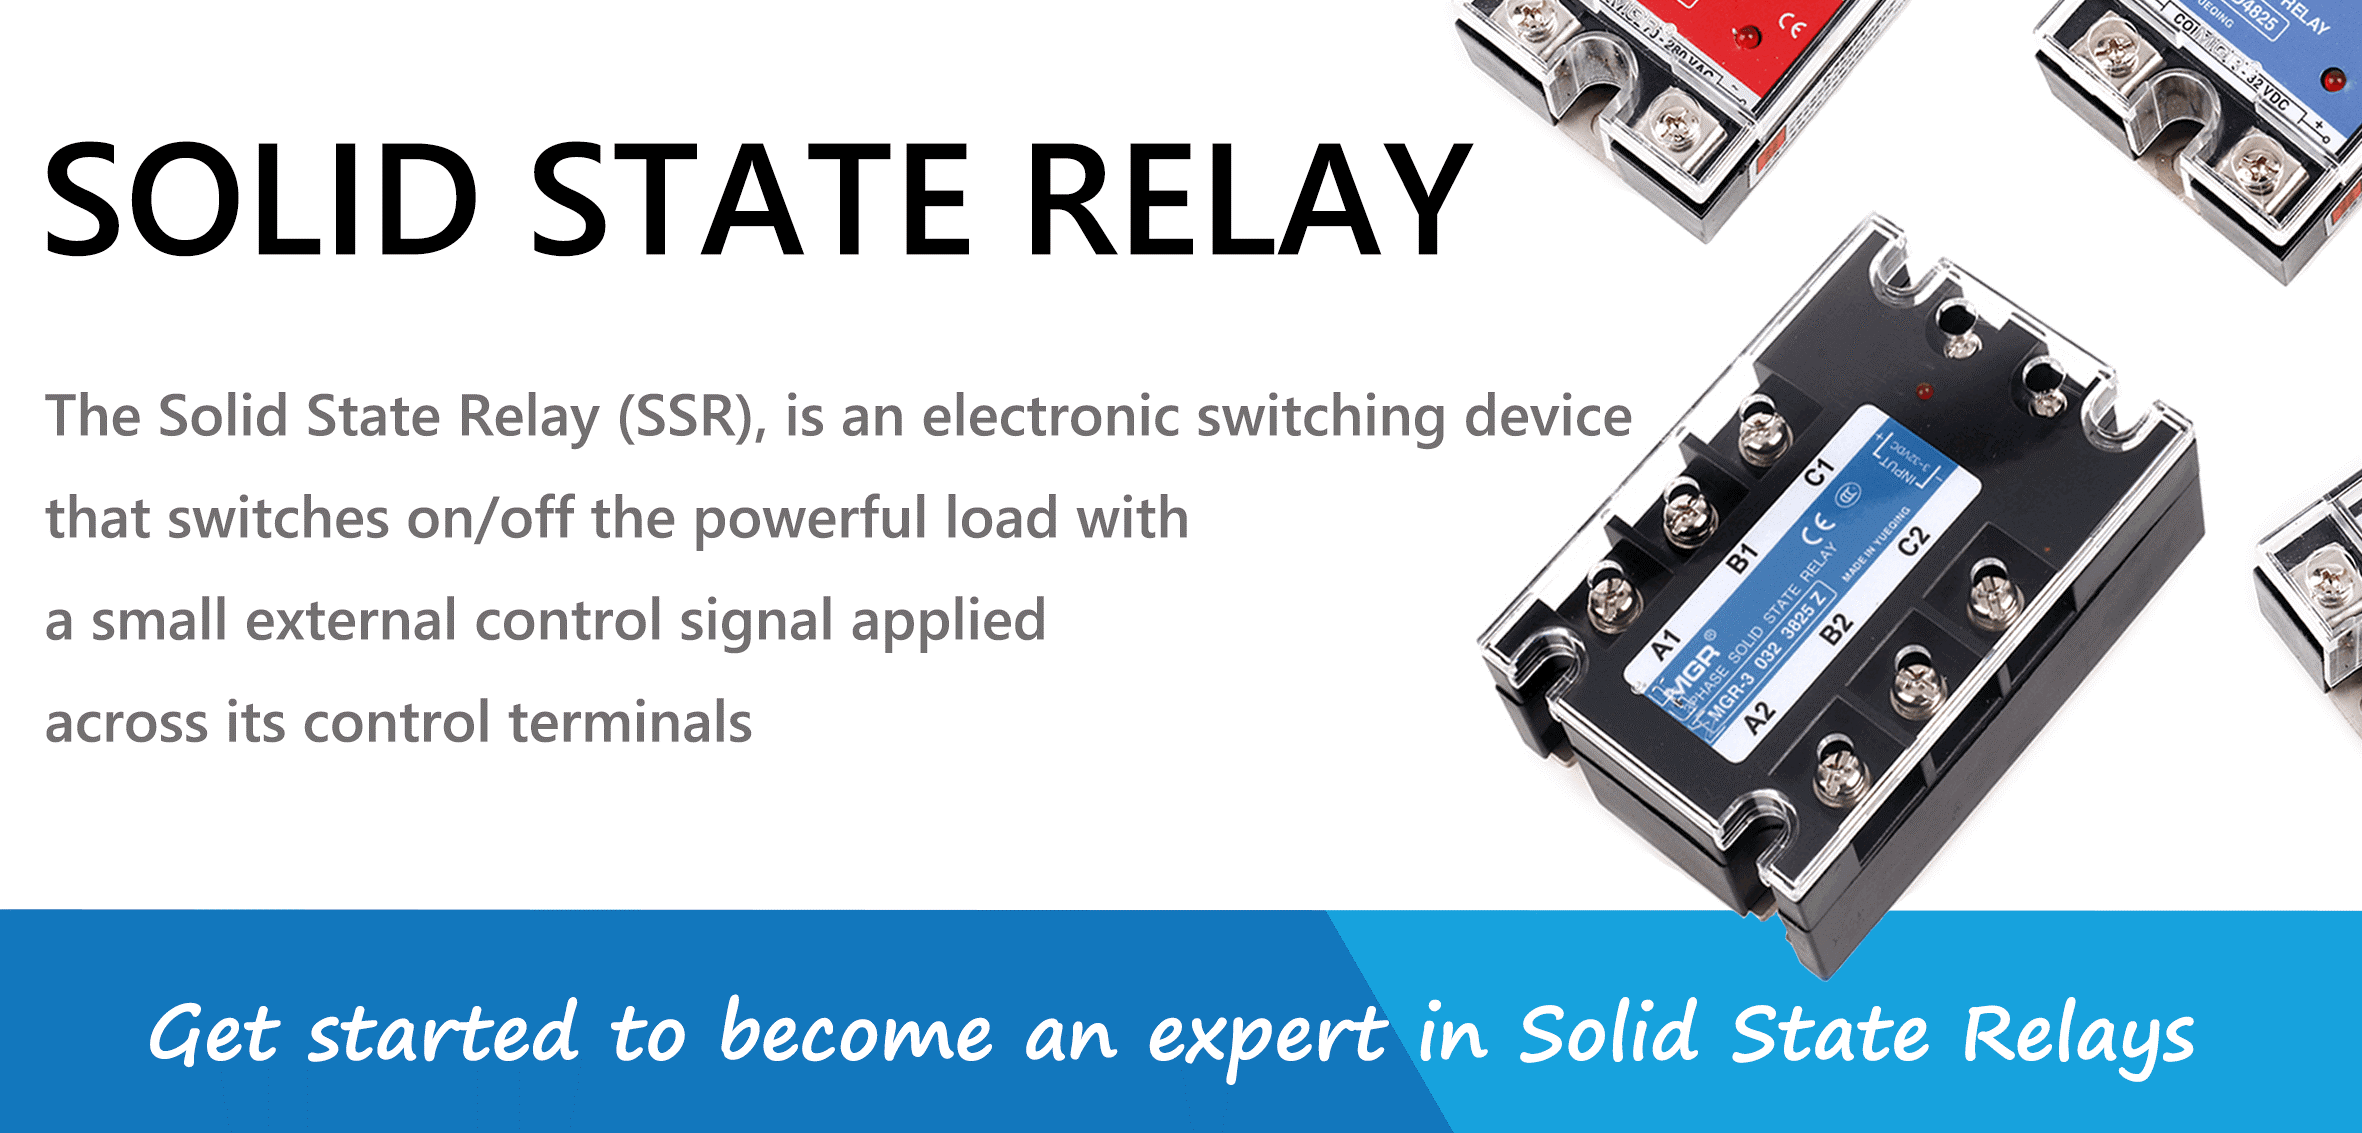 Get_started_to_become_an_expert_in_solid_state_relays│HUIMULTD